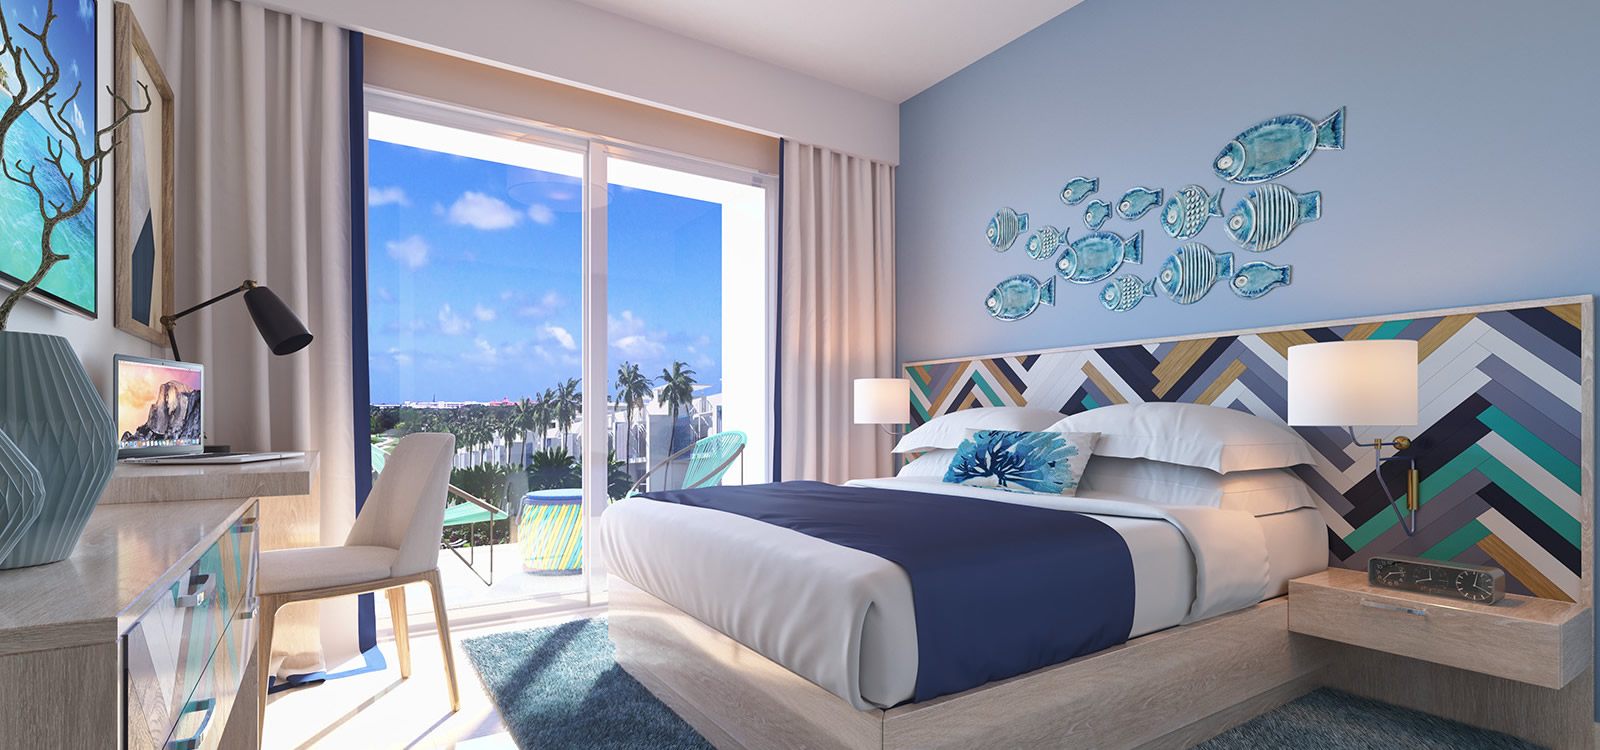 Condos For Sale At Hard Rock Golf Club At Cana Bay In Punta Cana Dominican Republic Bedroom